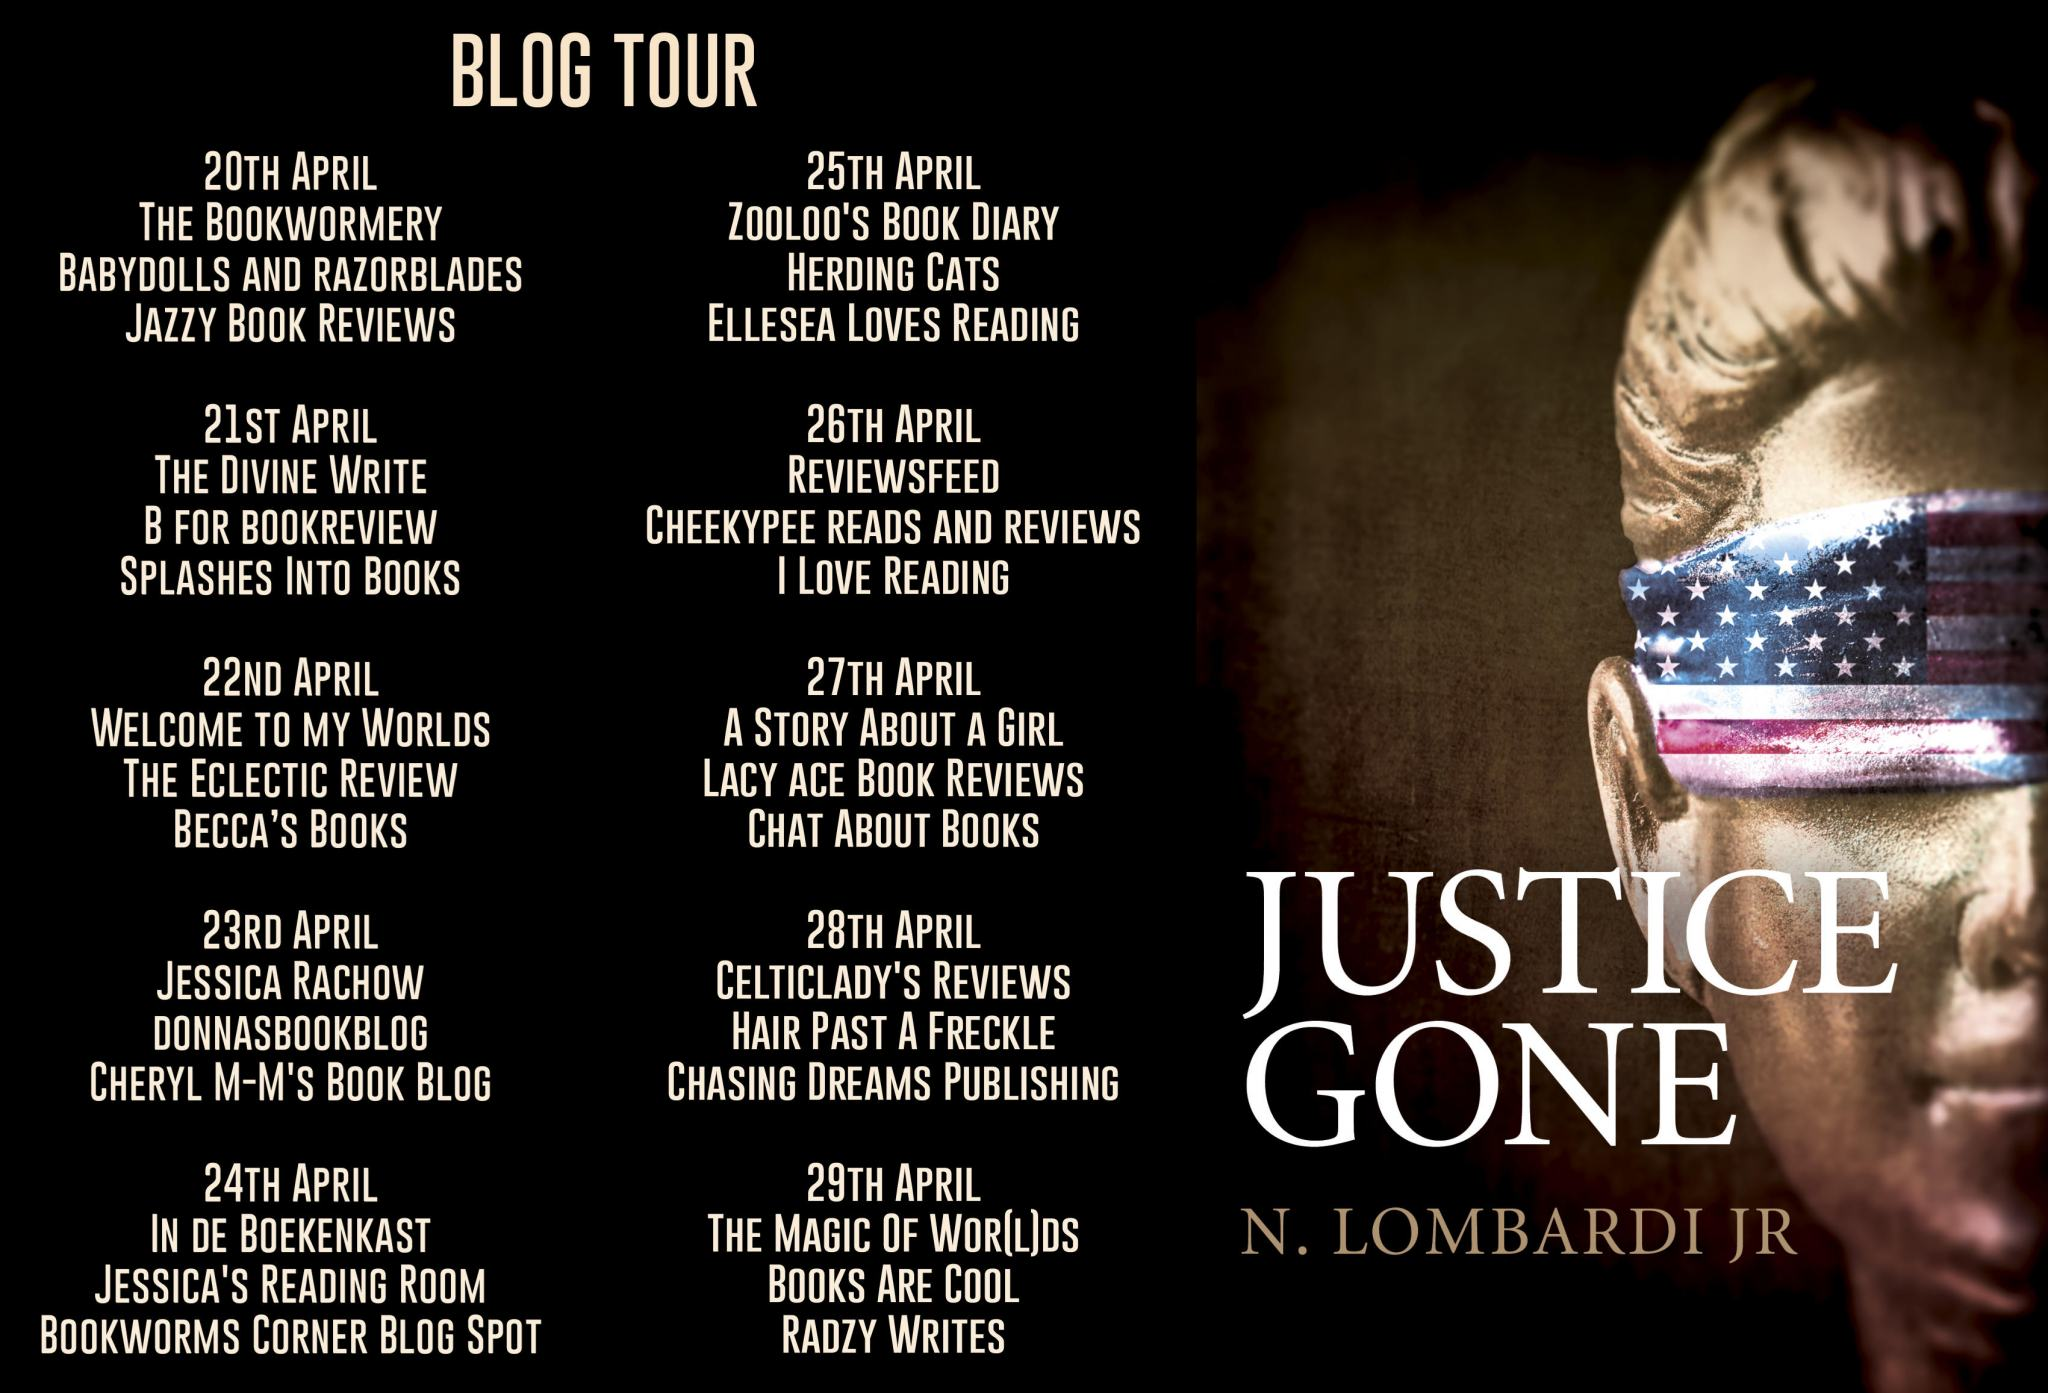 ***Justice Gone by N.Lombardi Jr